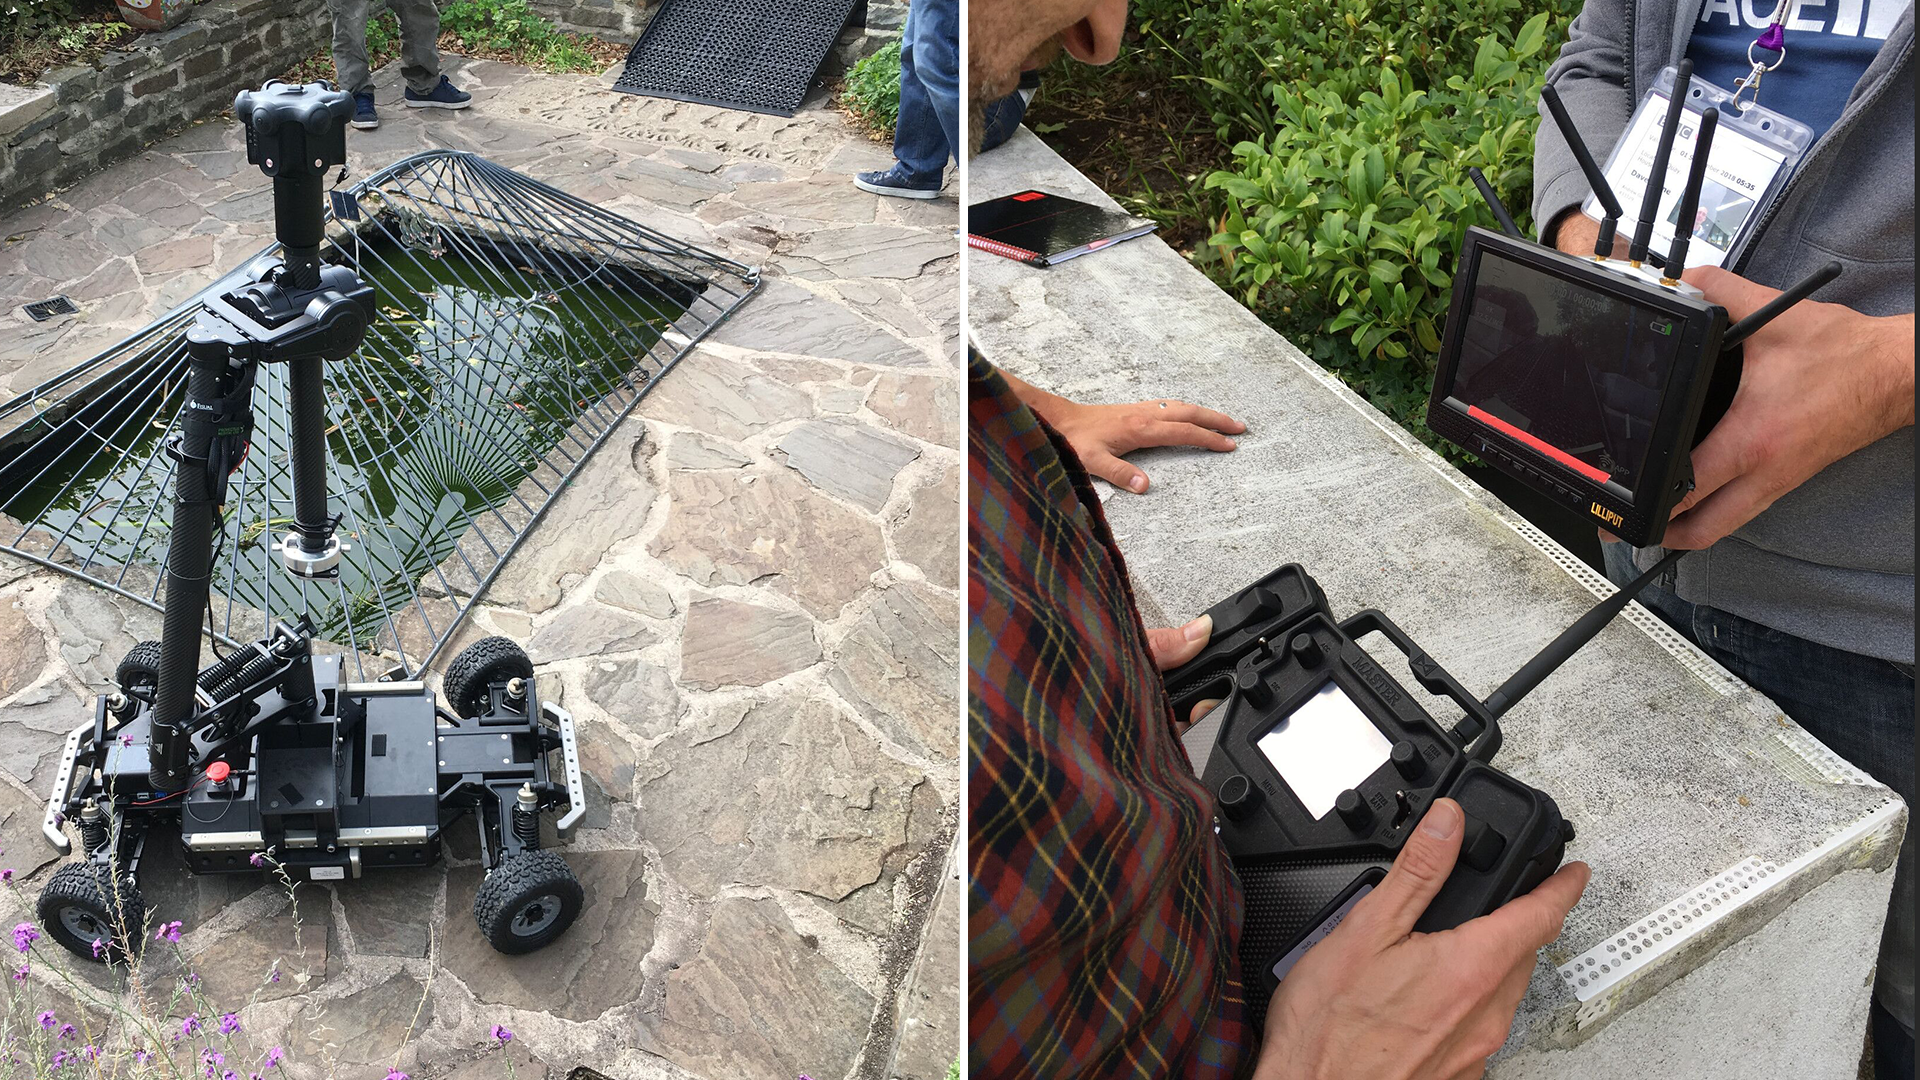 The remote-controlled Agito platform equipped with an Obsidian R and active camera stabilisation